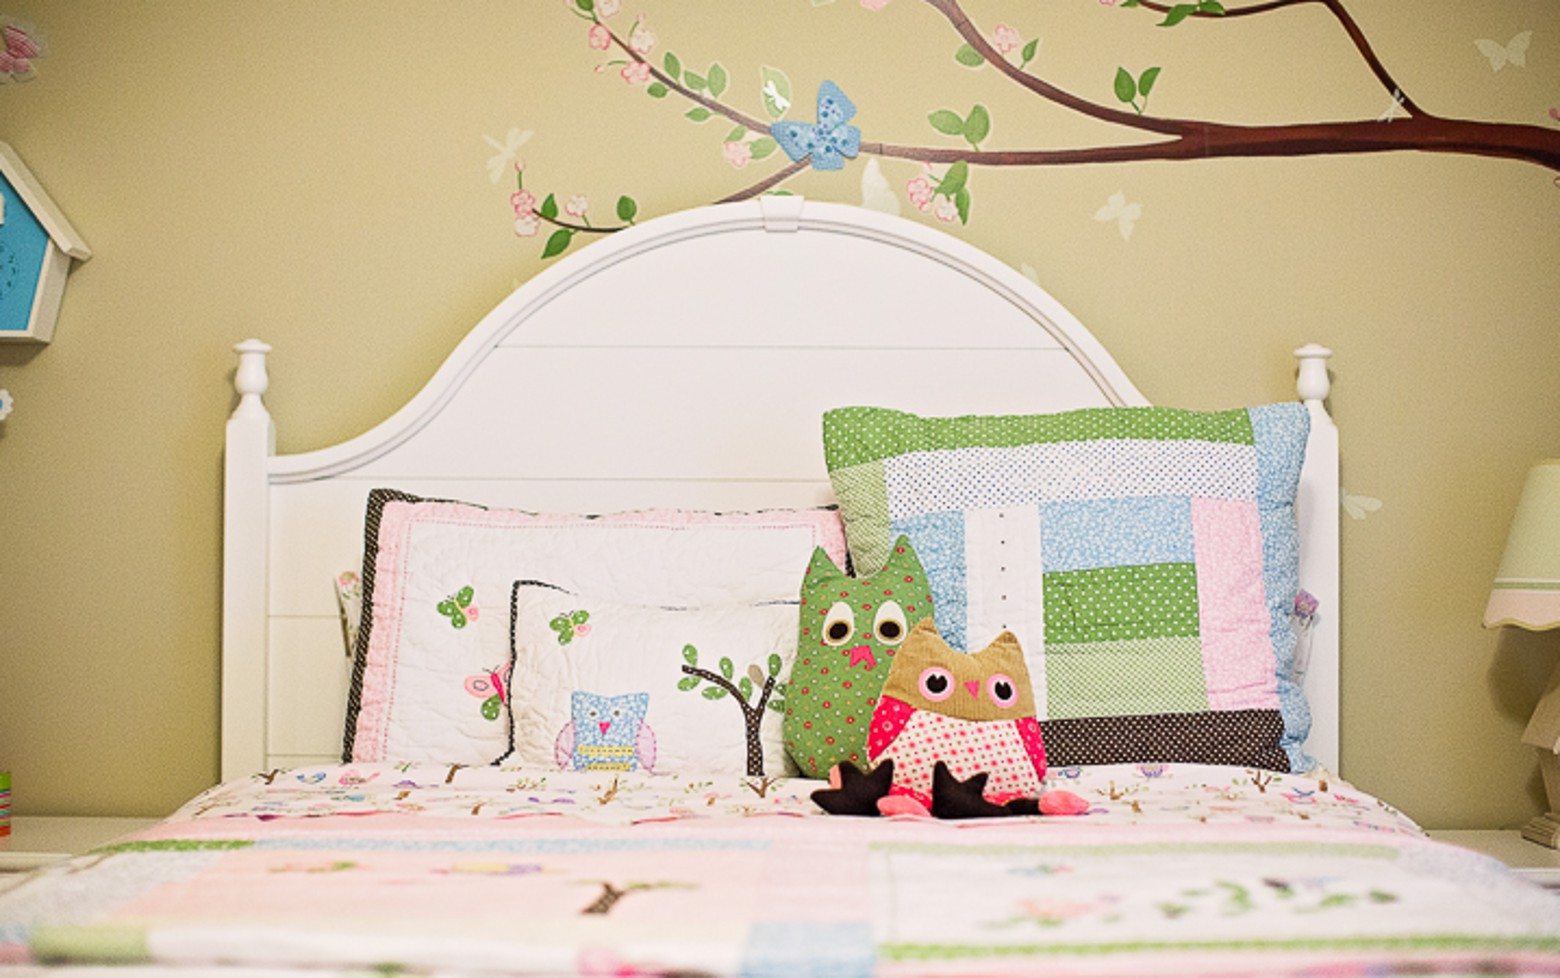 Kid's Theme Bedrooms image